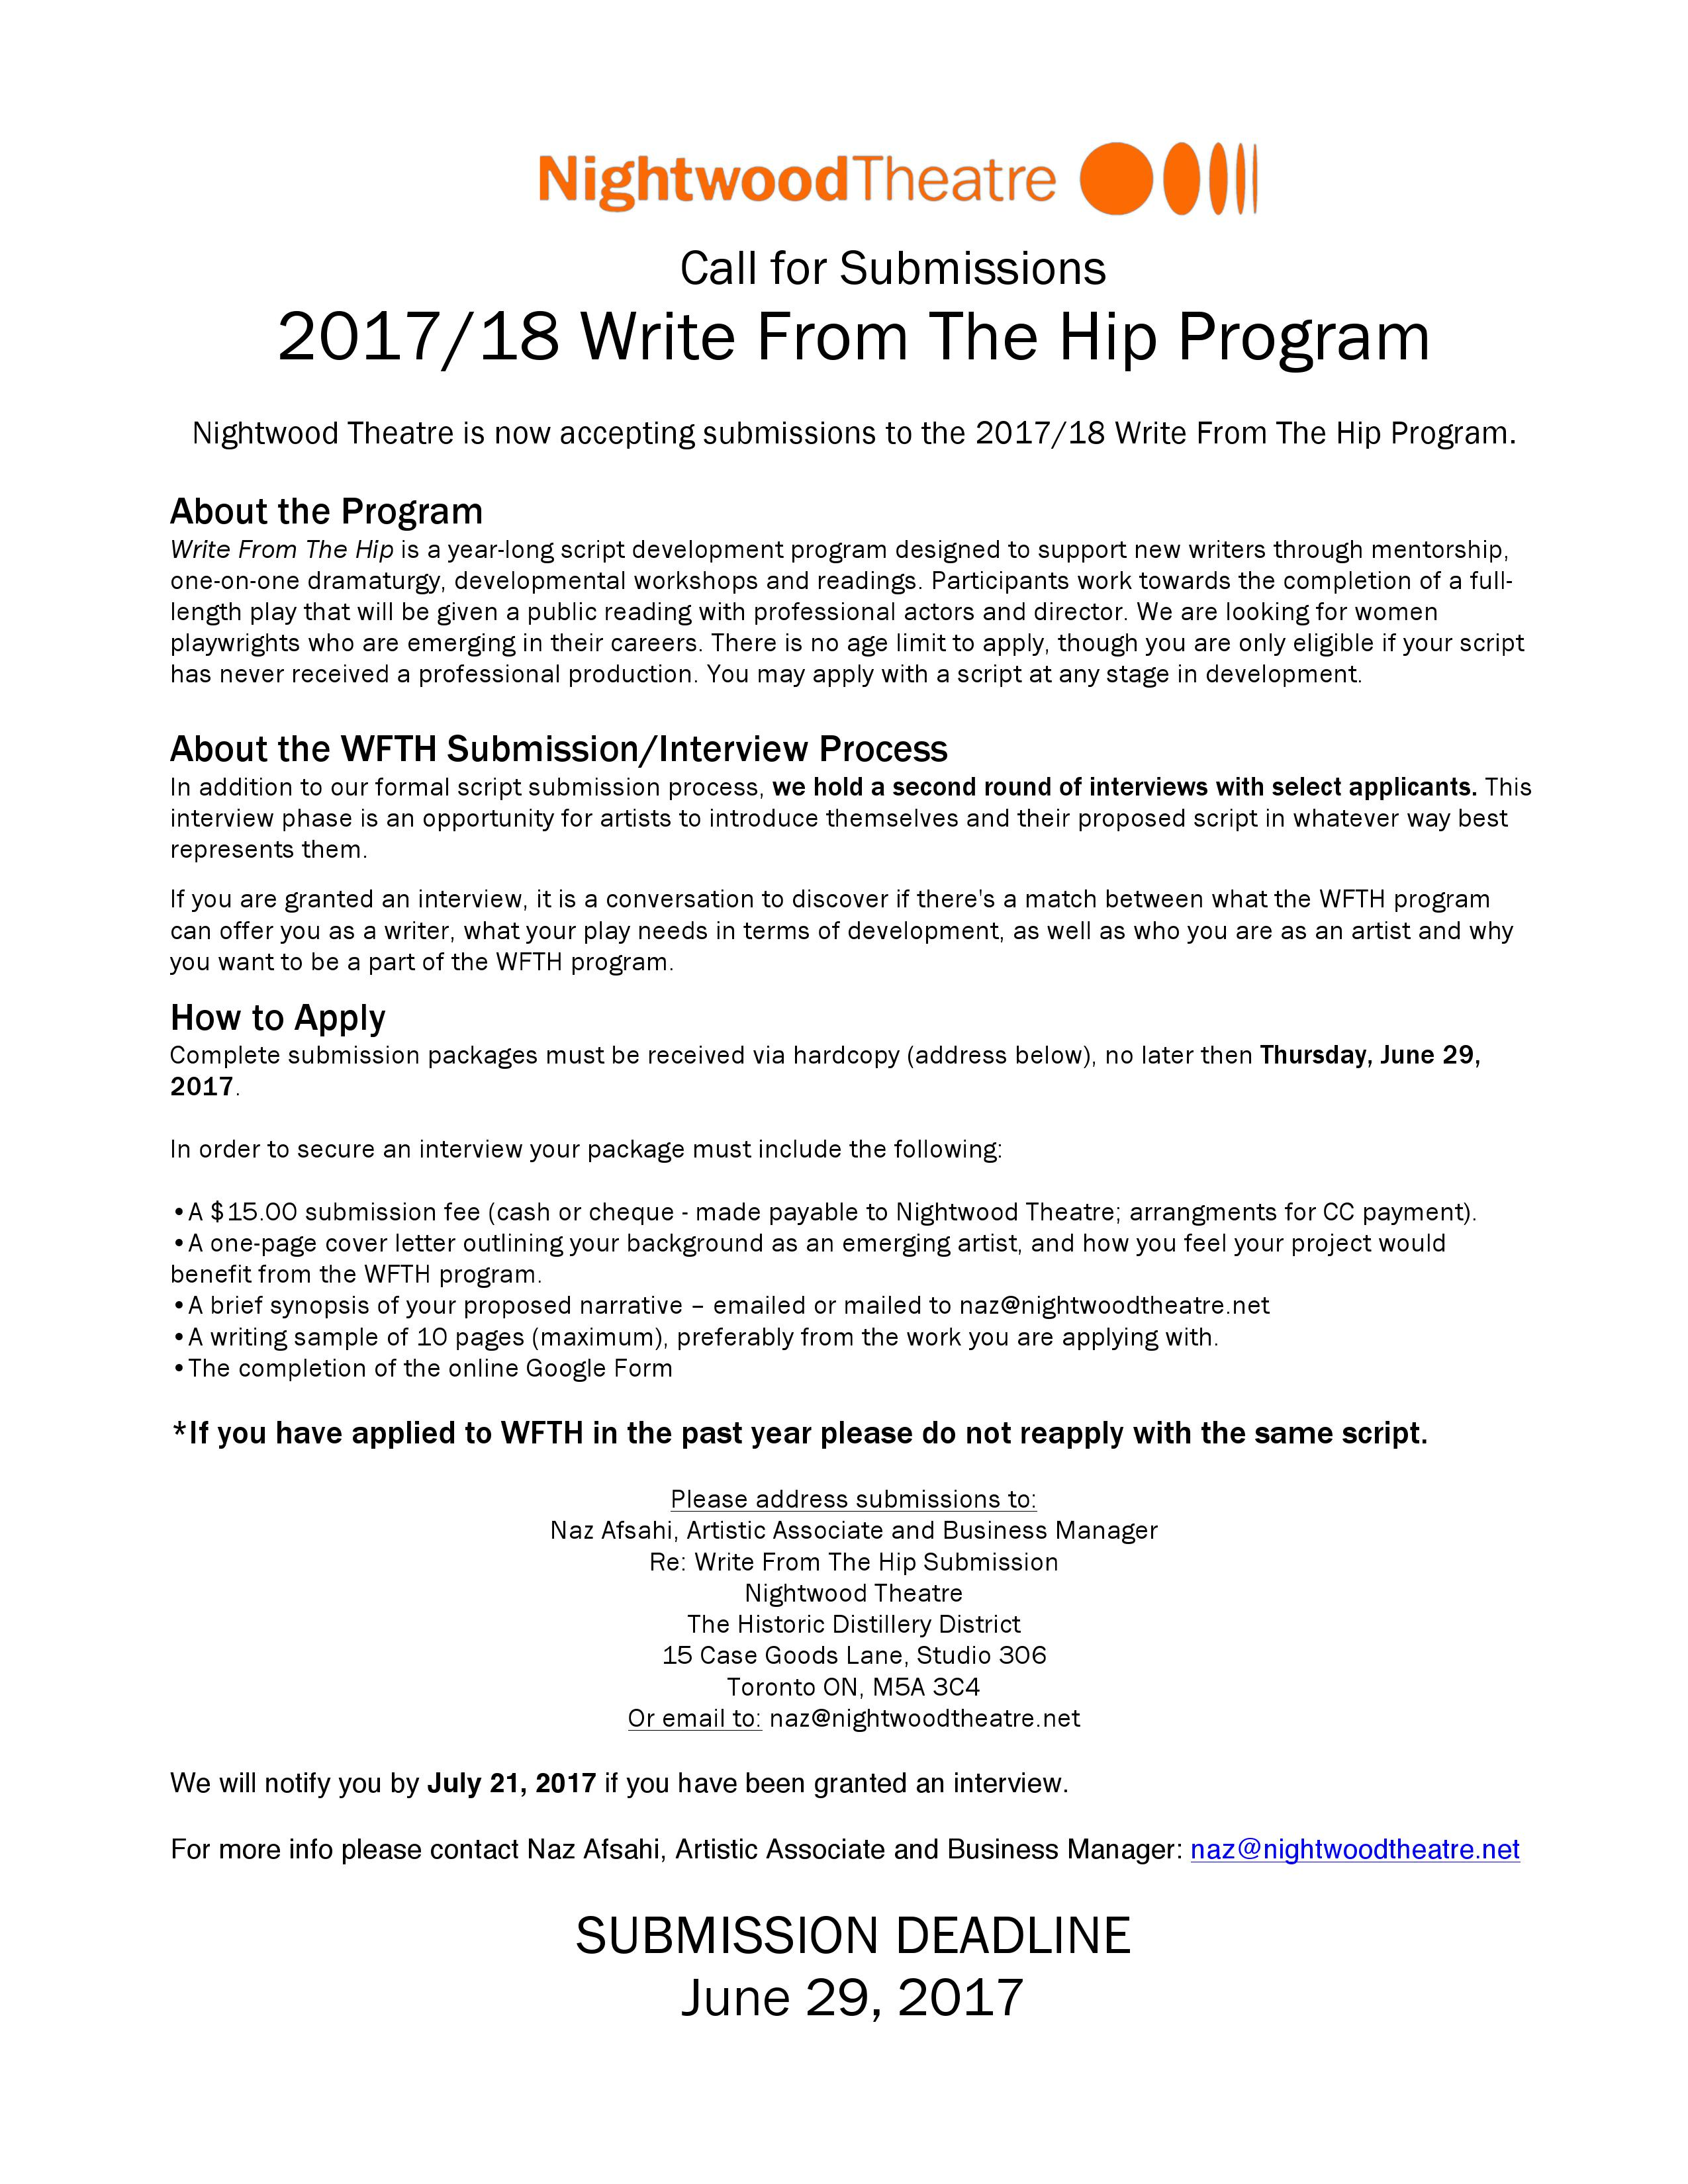 WFTH Submission Call 2017-18